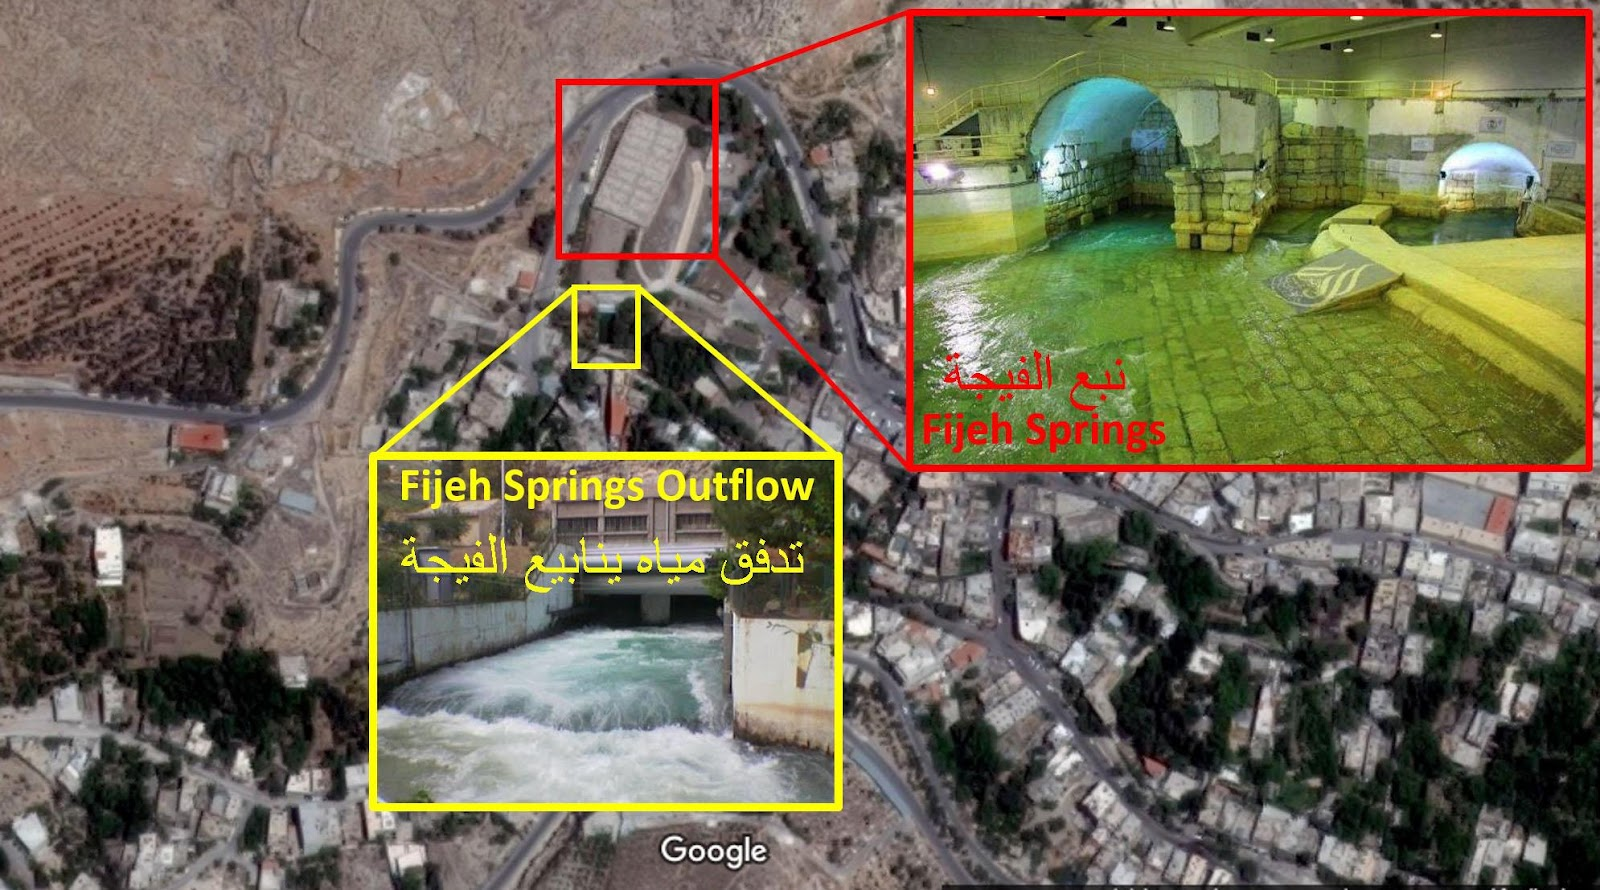 https://017qndpynh-flywheel.netdna-ssl.com/wp-content/uploads/2017/01/Watersupply-in-detail-courtesy-good-maps-M-Darwishah-and-talkingsyria.com_.jpg